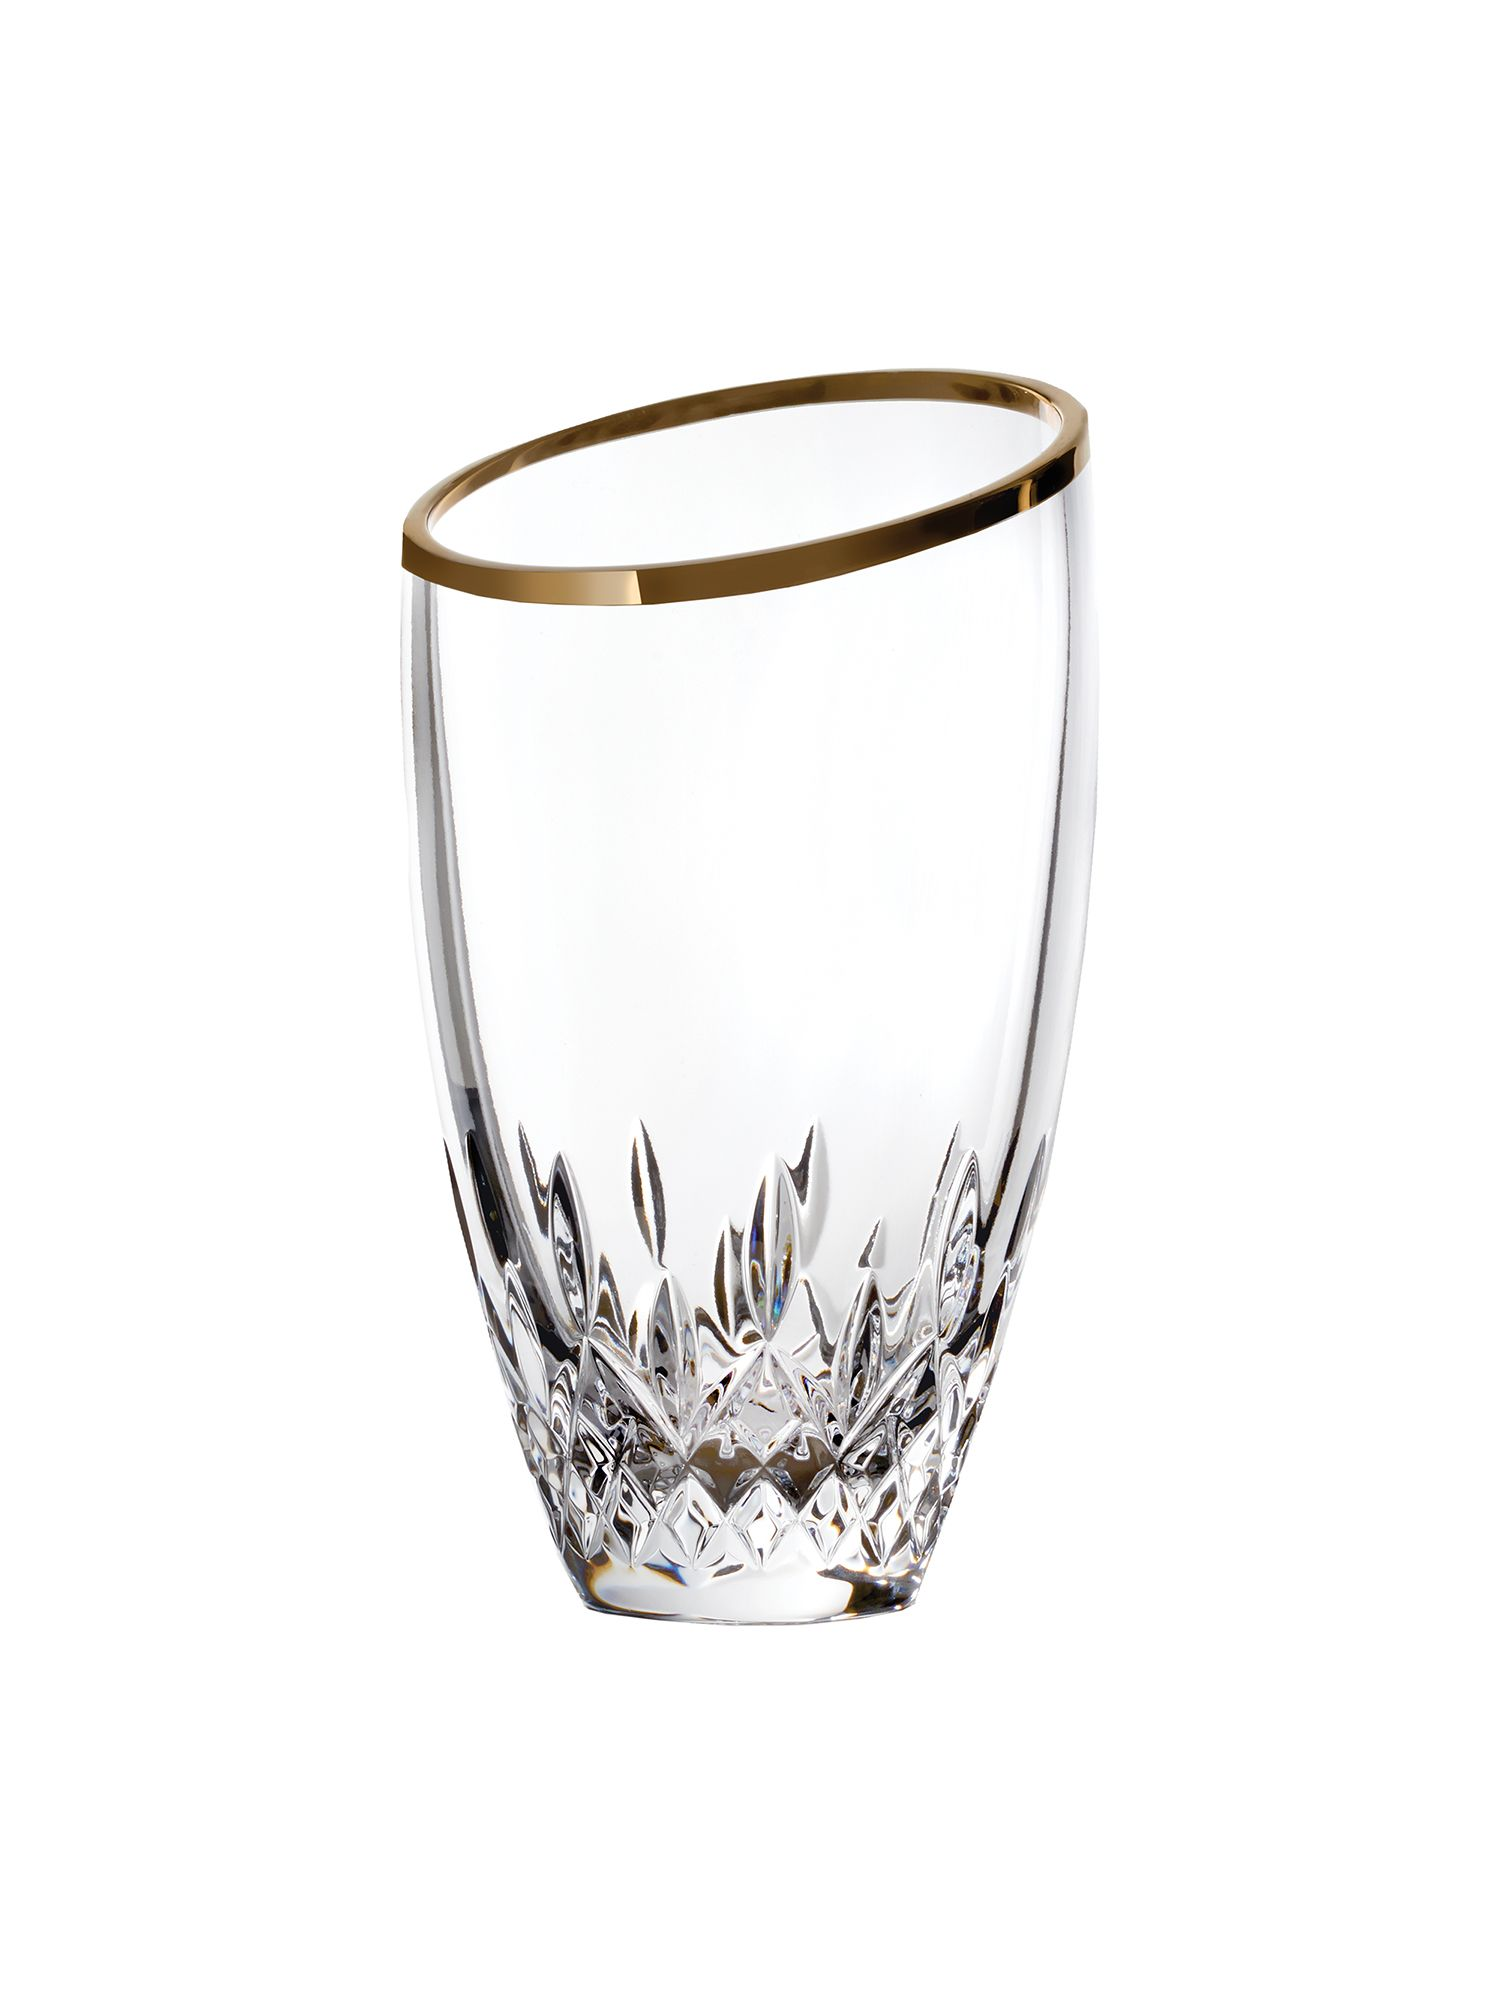 Lismore essence gold angular vase 22.5cm